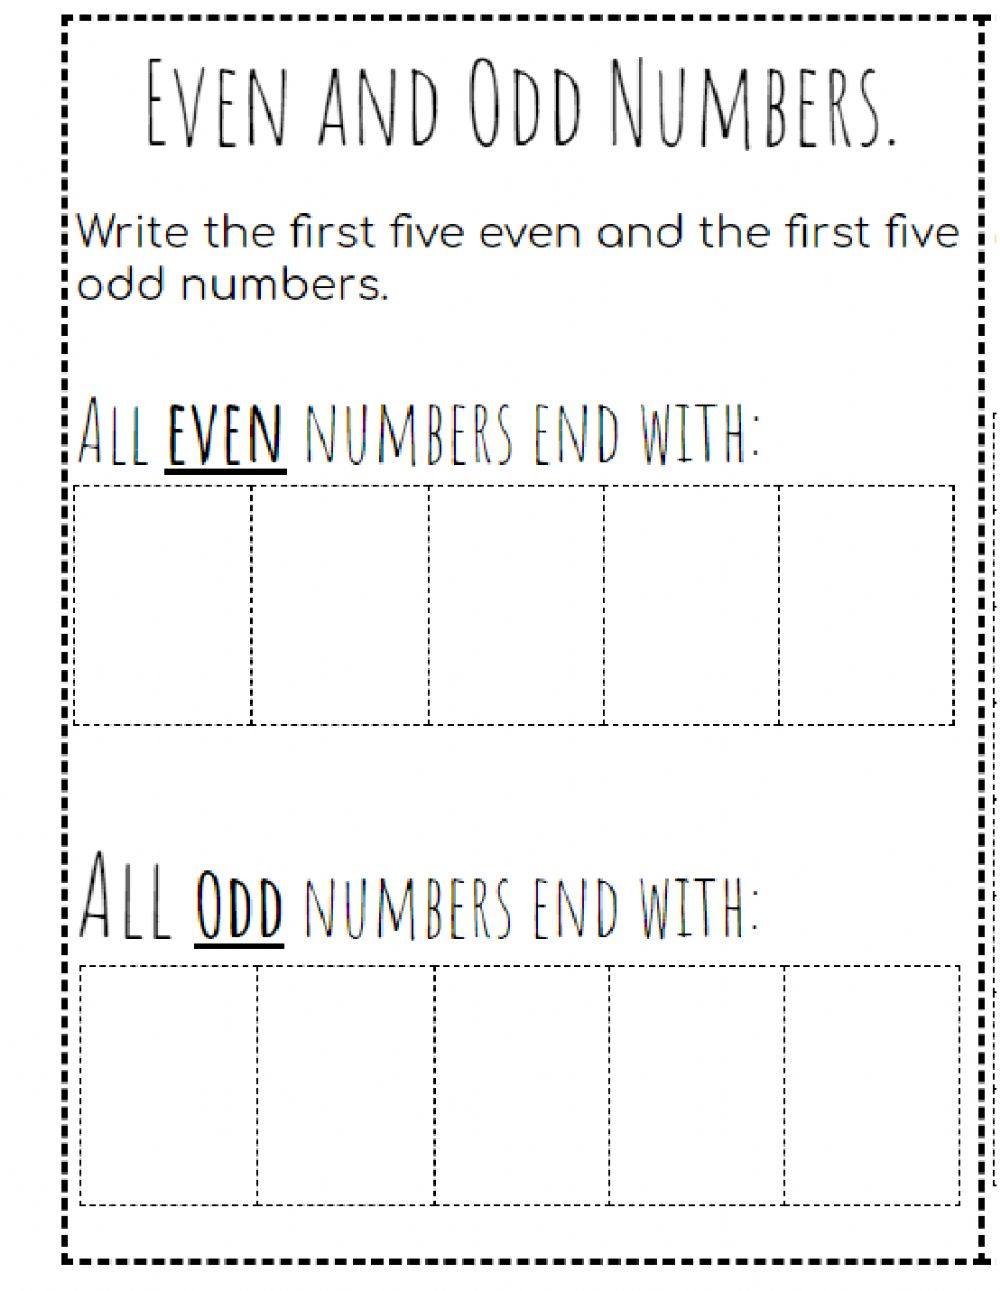 medium resolution of Even and Odd numbers interactive worksheet